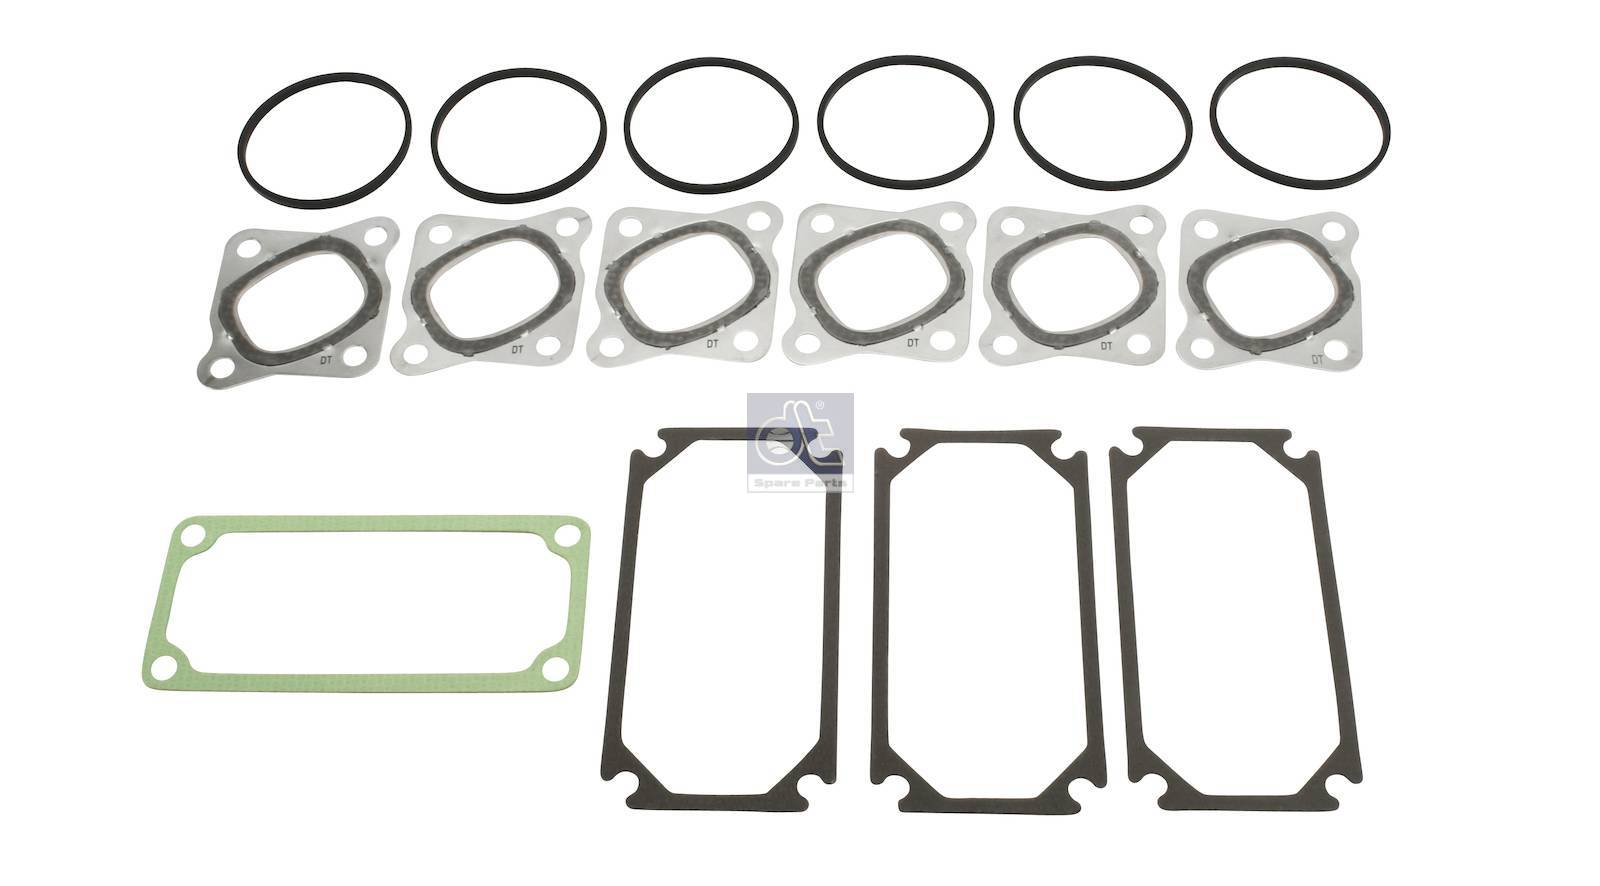 Dt 2 Gasket Kit Exhaust Manifold Suitable